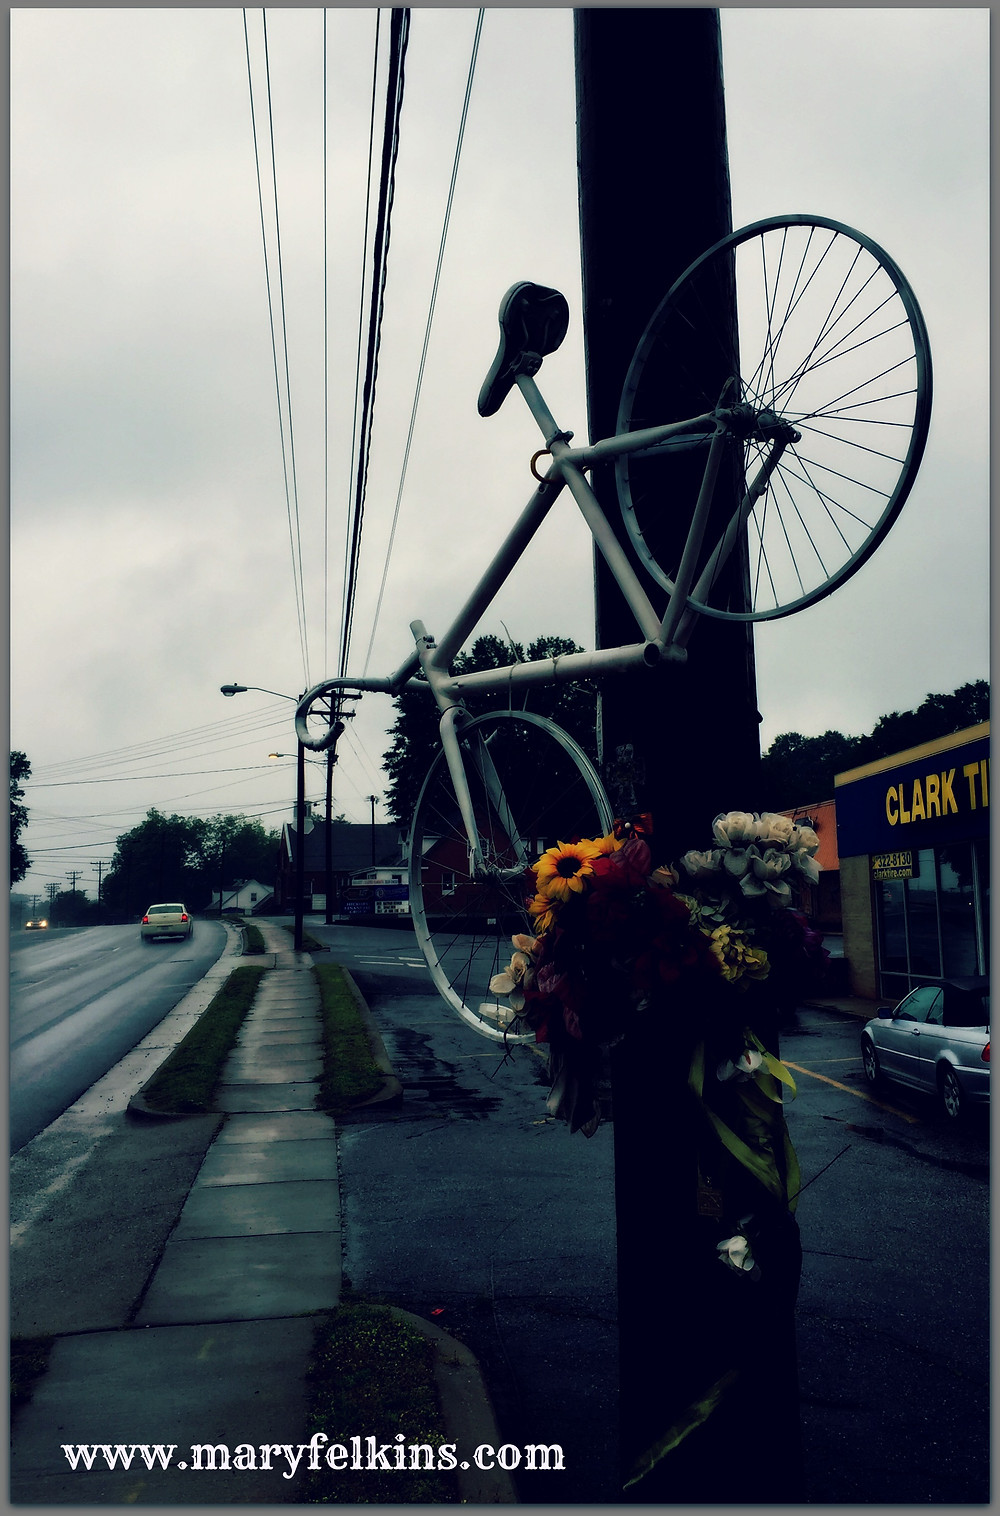 removing-the-ghost-bike-in-my-soul-2-picmonkey